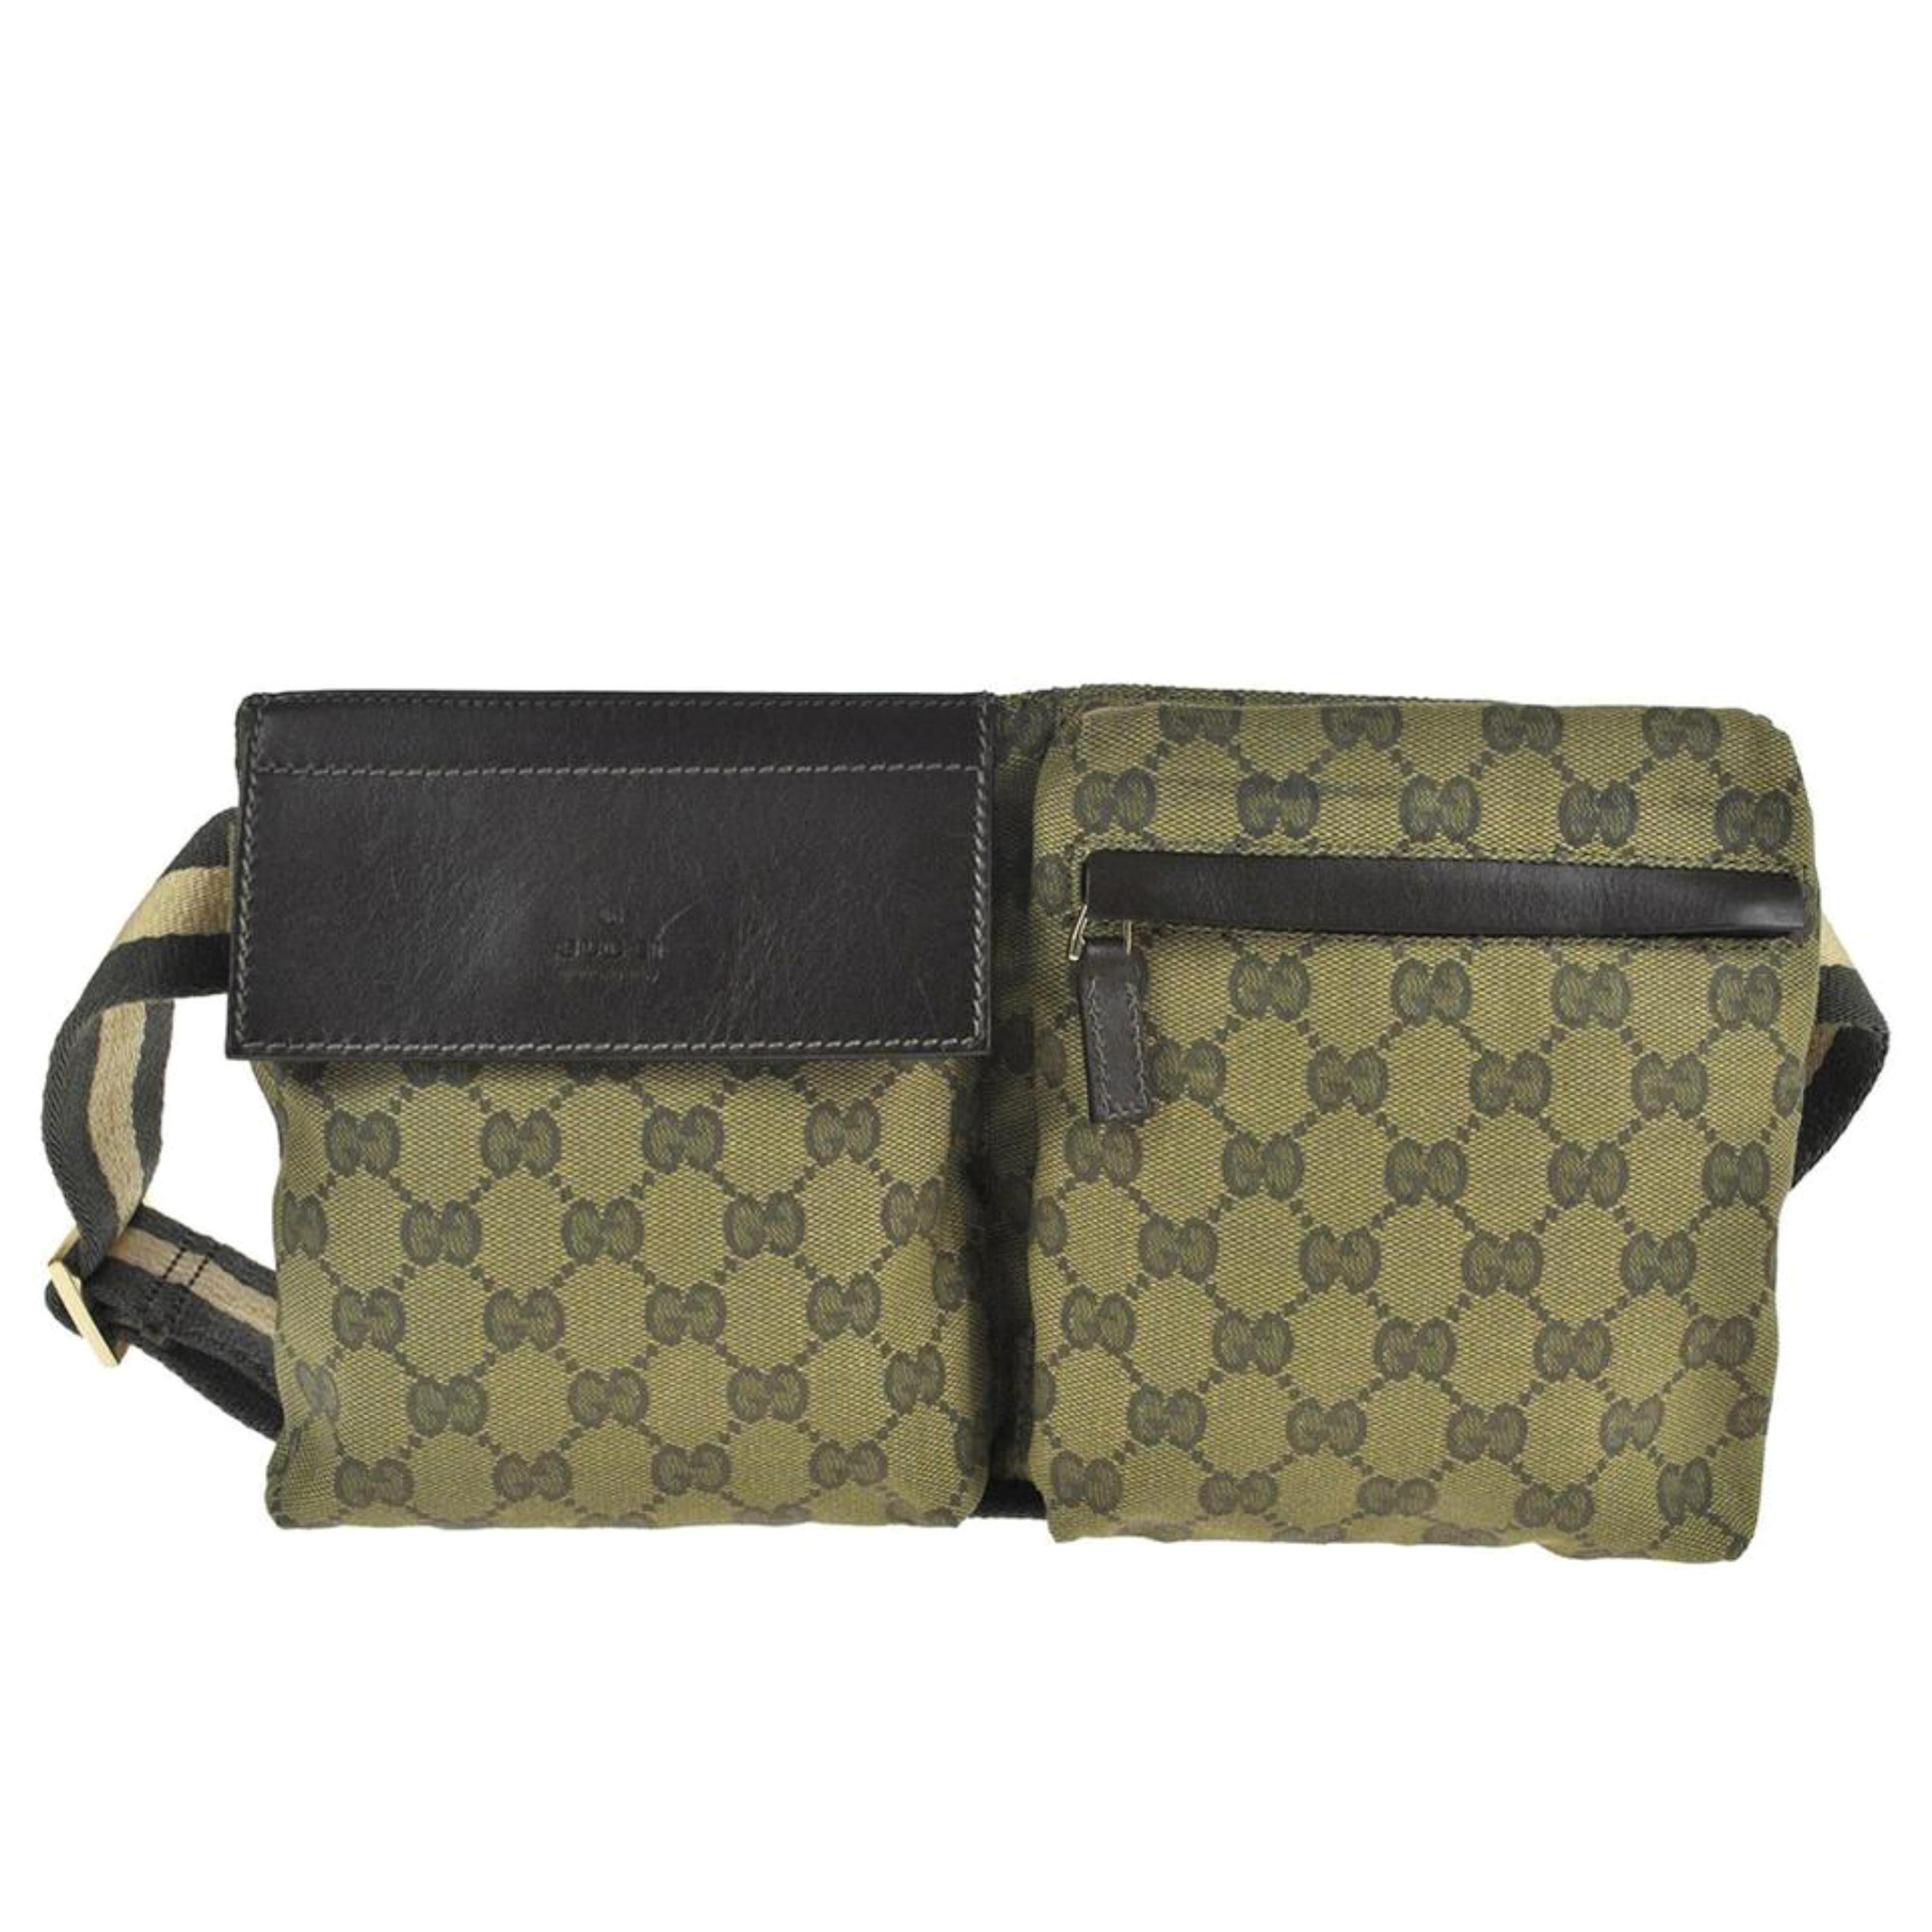 206a361e4bd Gucci (Ultra Rare) Monogram Web Khaki Gg Fanny Pack Waist Pouch 868028  Green Can For Sale at 1stdibs